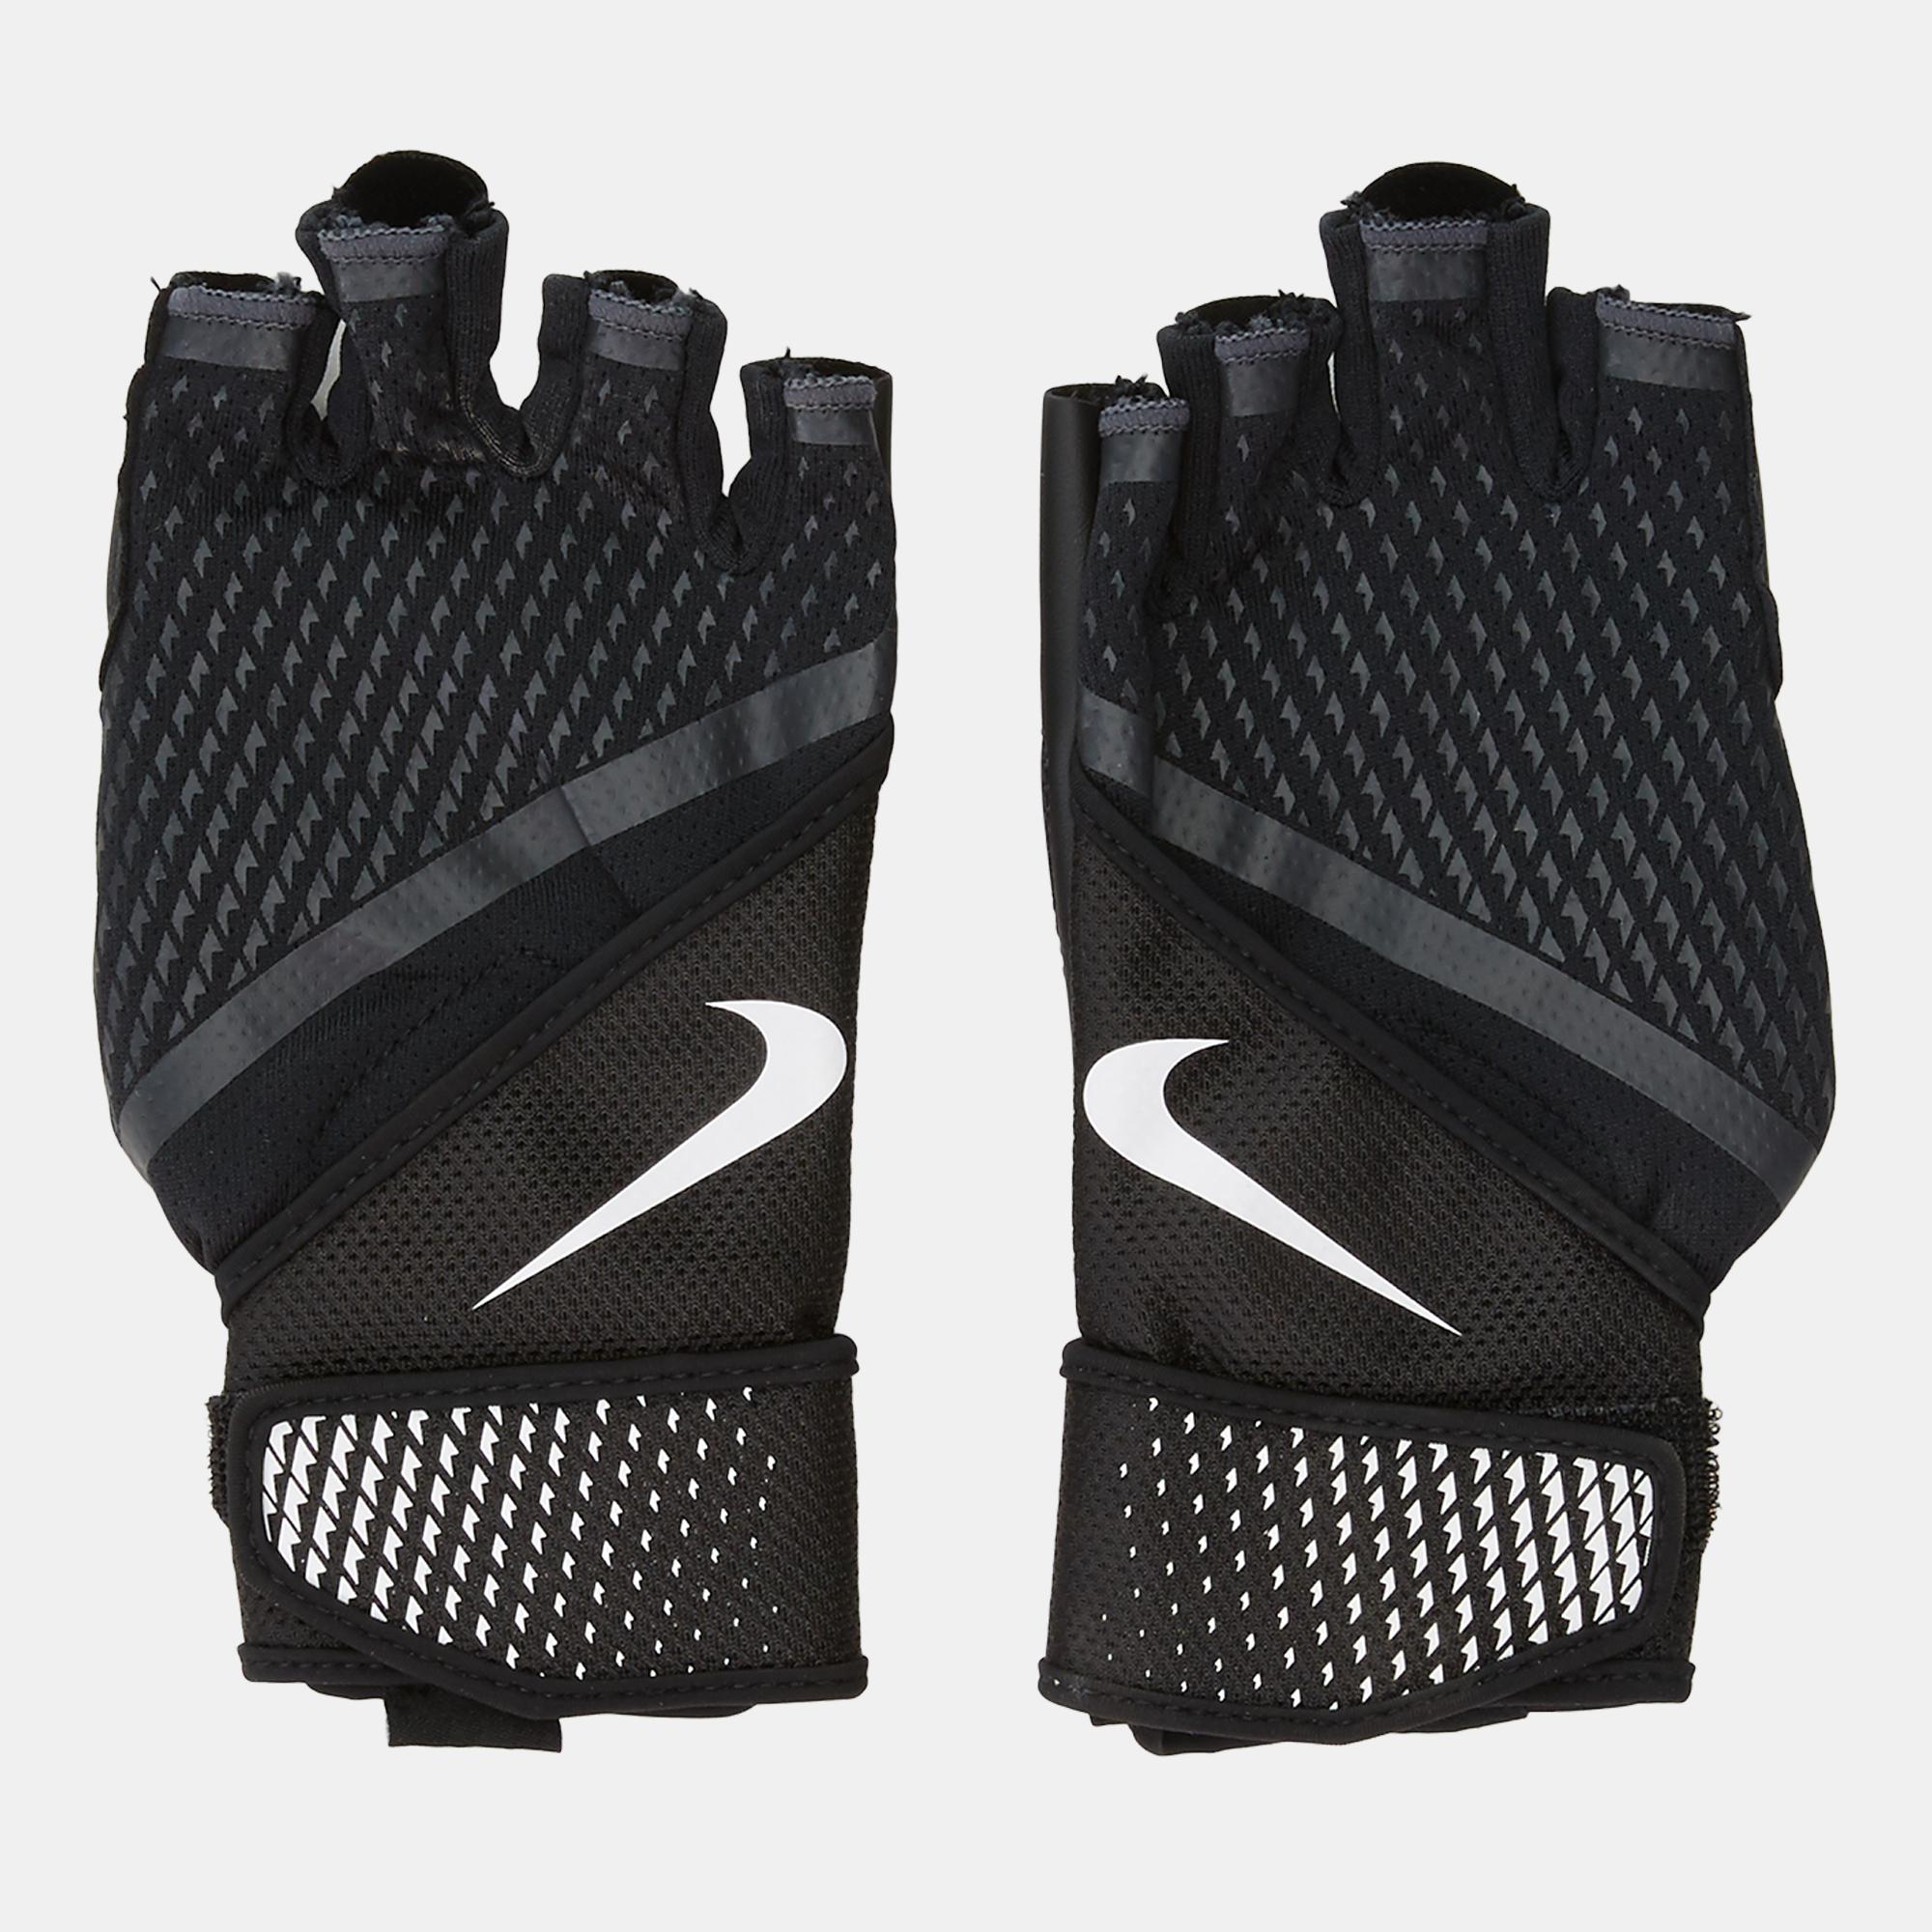 Nike Men S Destroyer Training Gloves: Shop Black Nike Destroyer Training Gloves For Mens By Nike